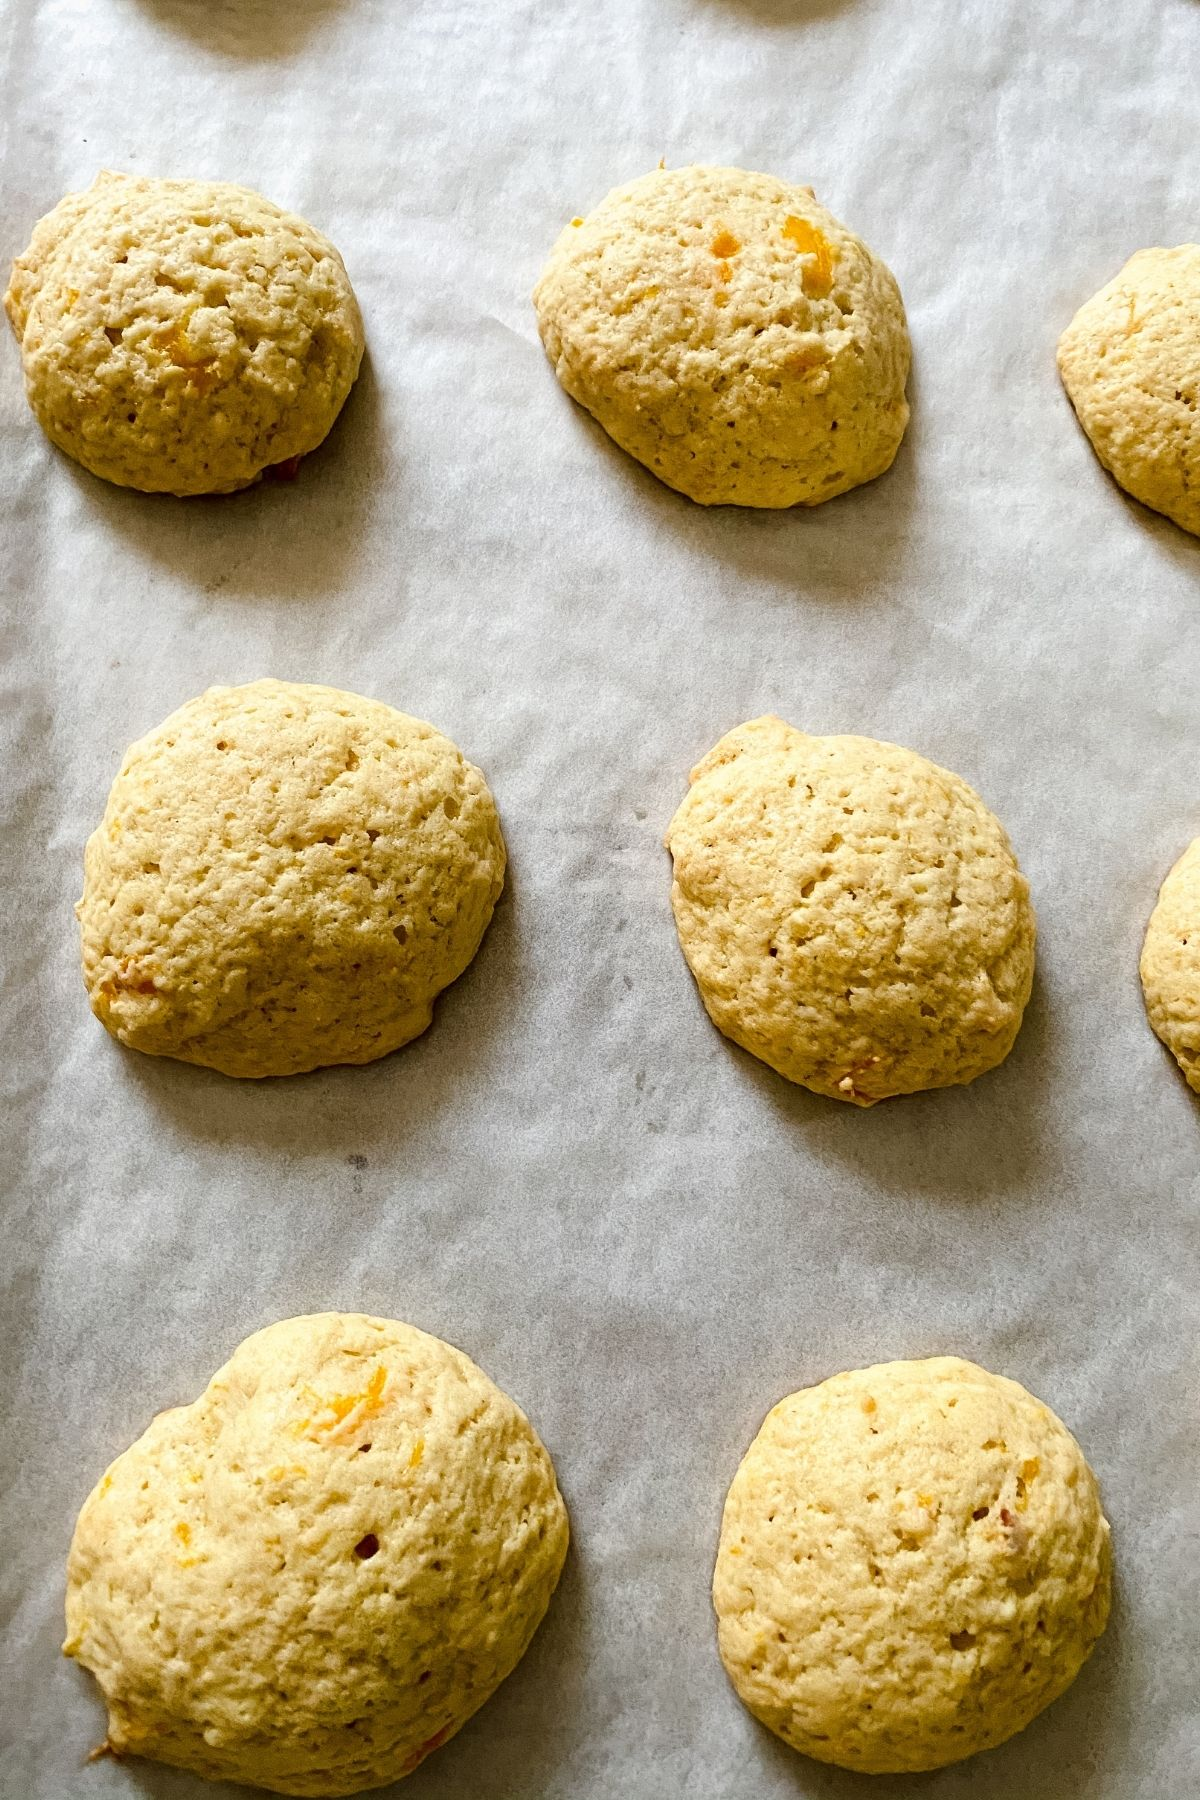 Light brown cookies on parchment lined baking sheet